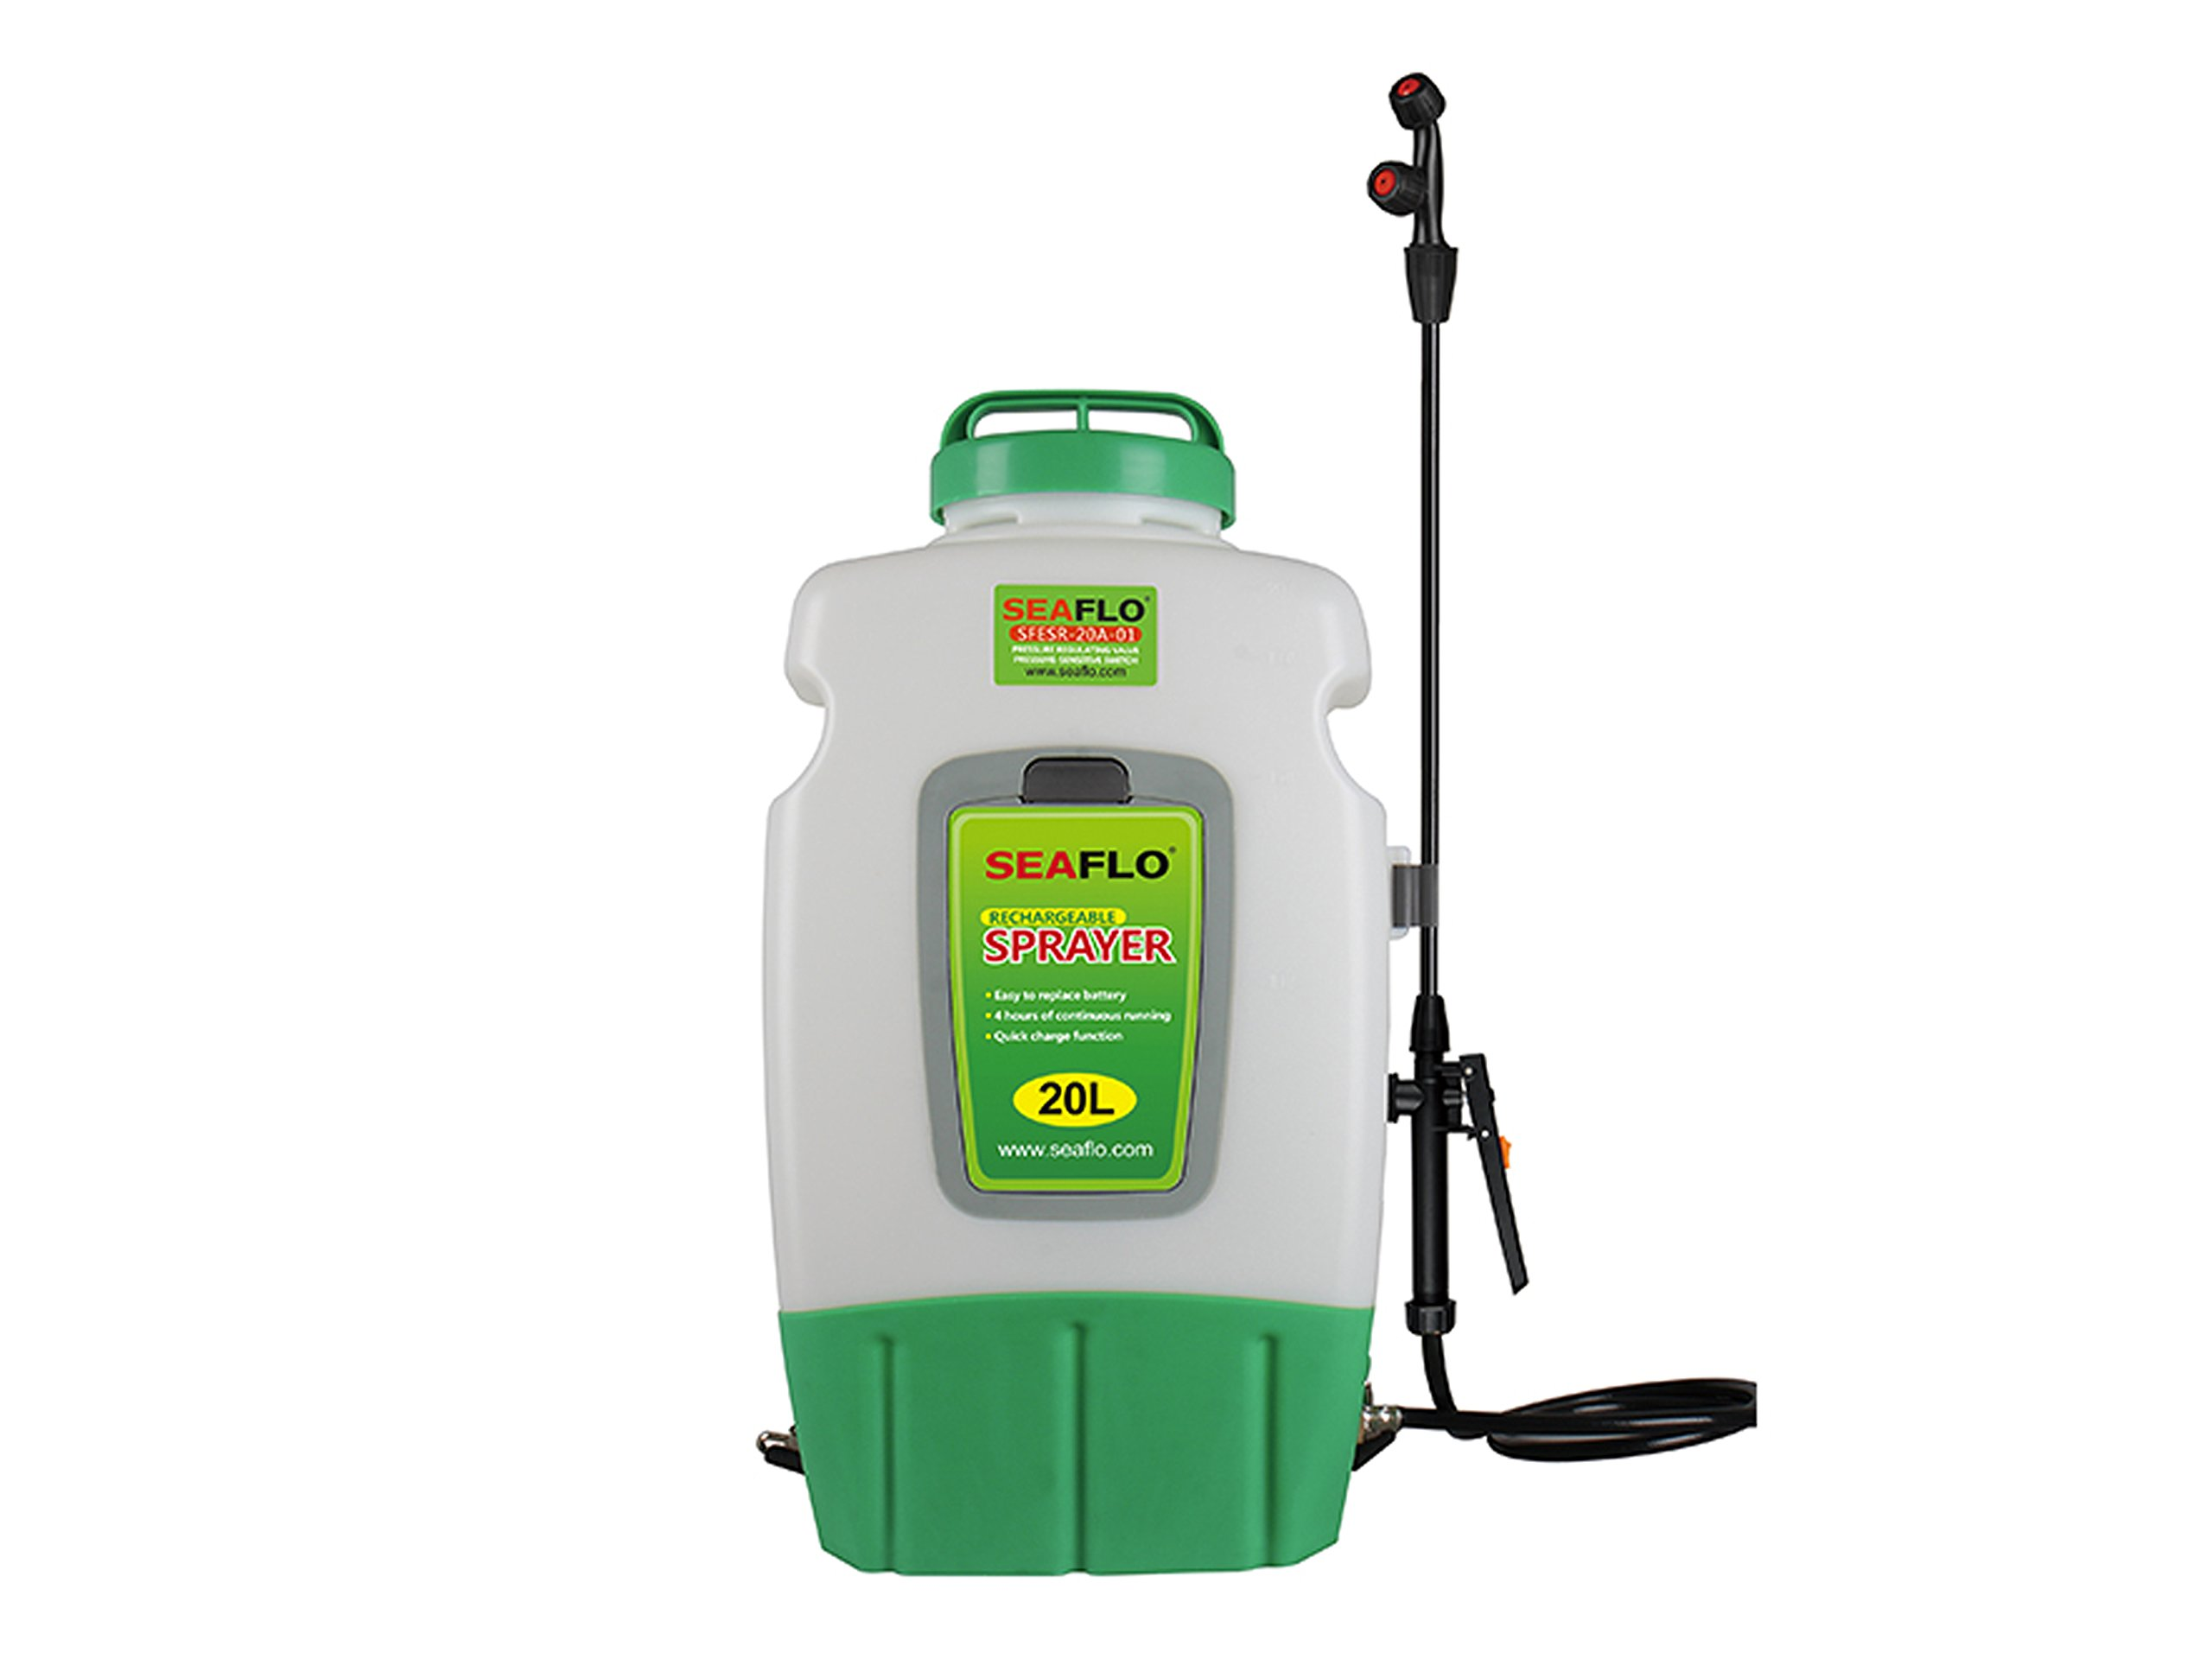 Seaflo 20L Knapsack Agricultural Electric Sprayer BC-4130 by Seaflo